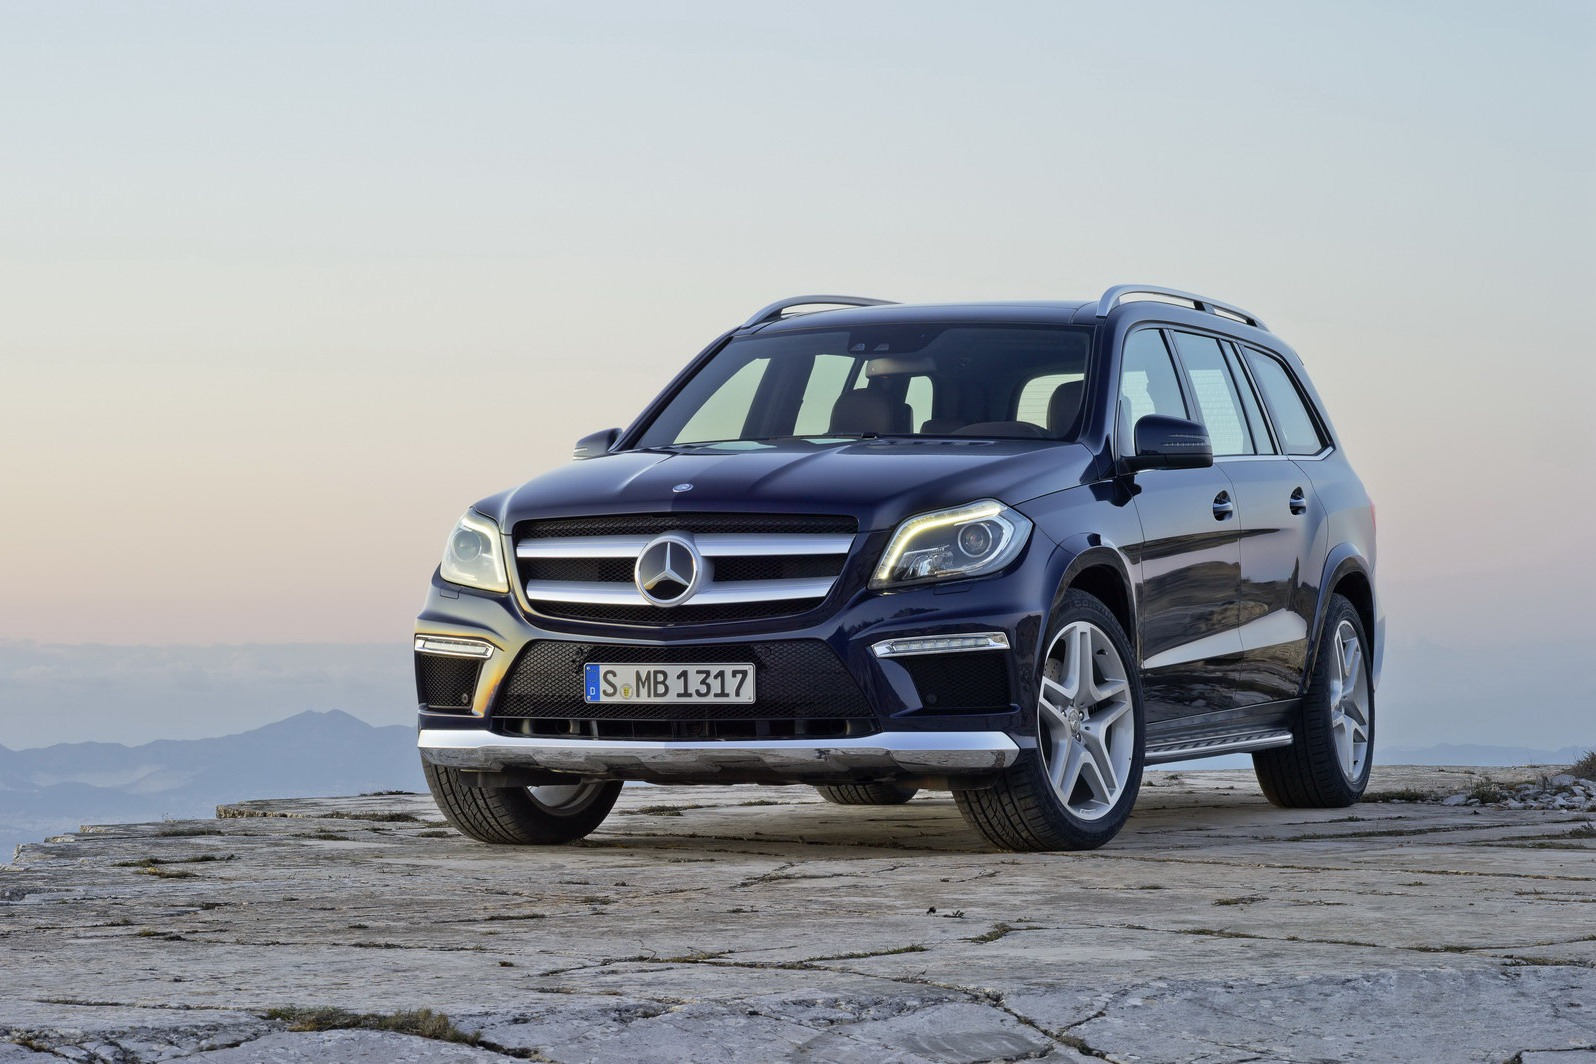 2013 mercedes benz gl class luxury suv unveiled for 2013 mercedes benz gl class